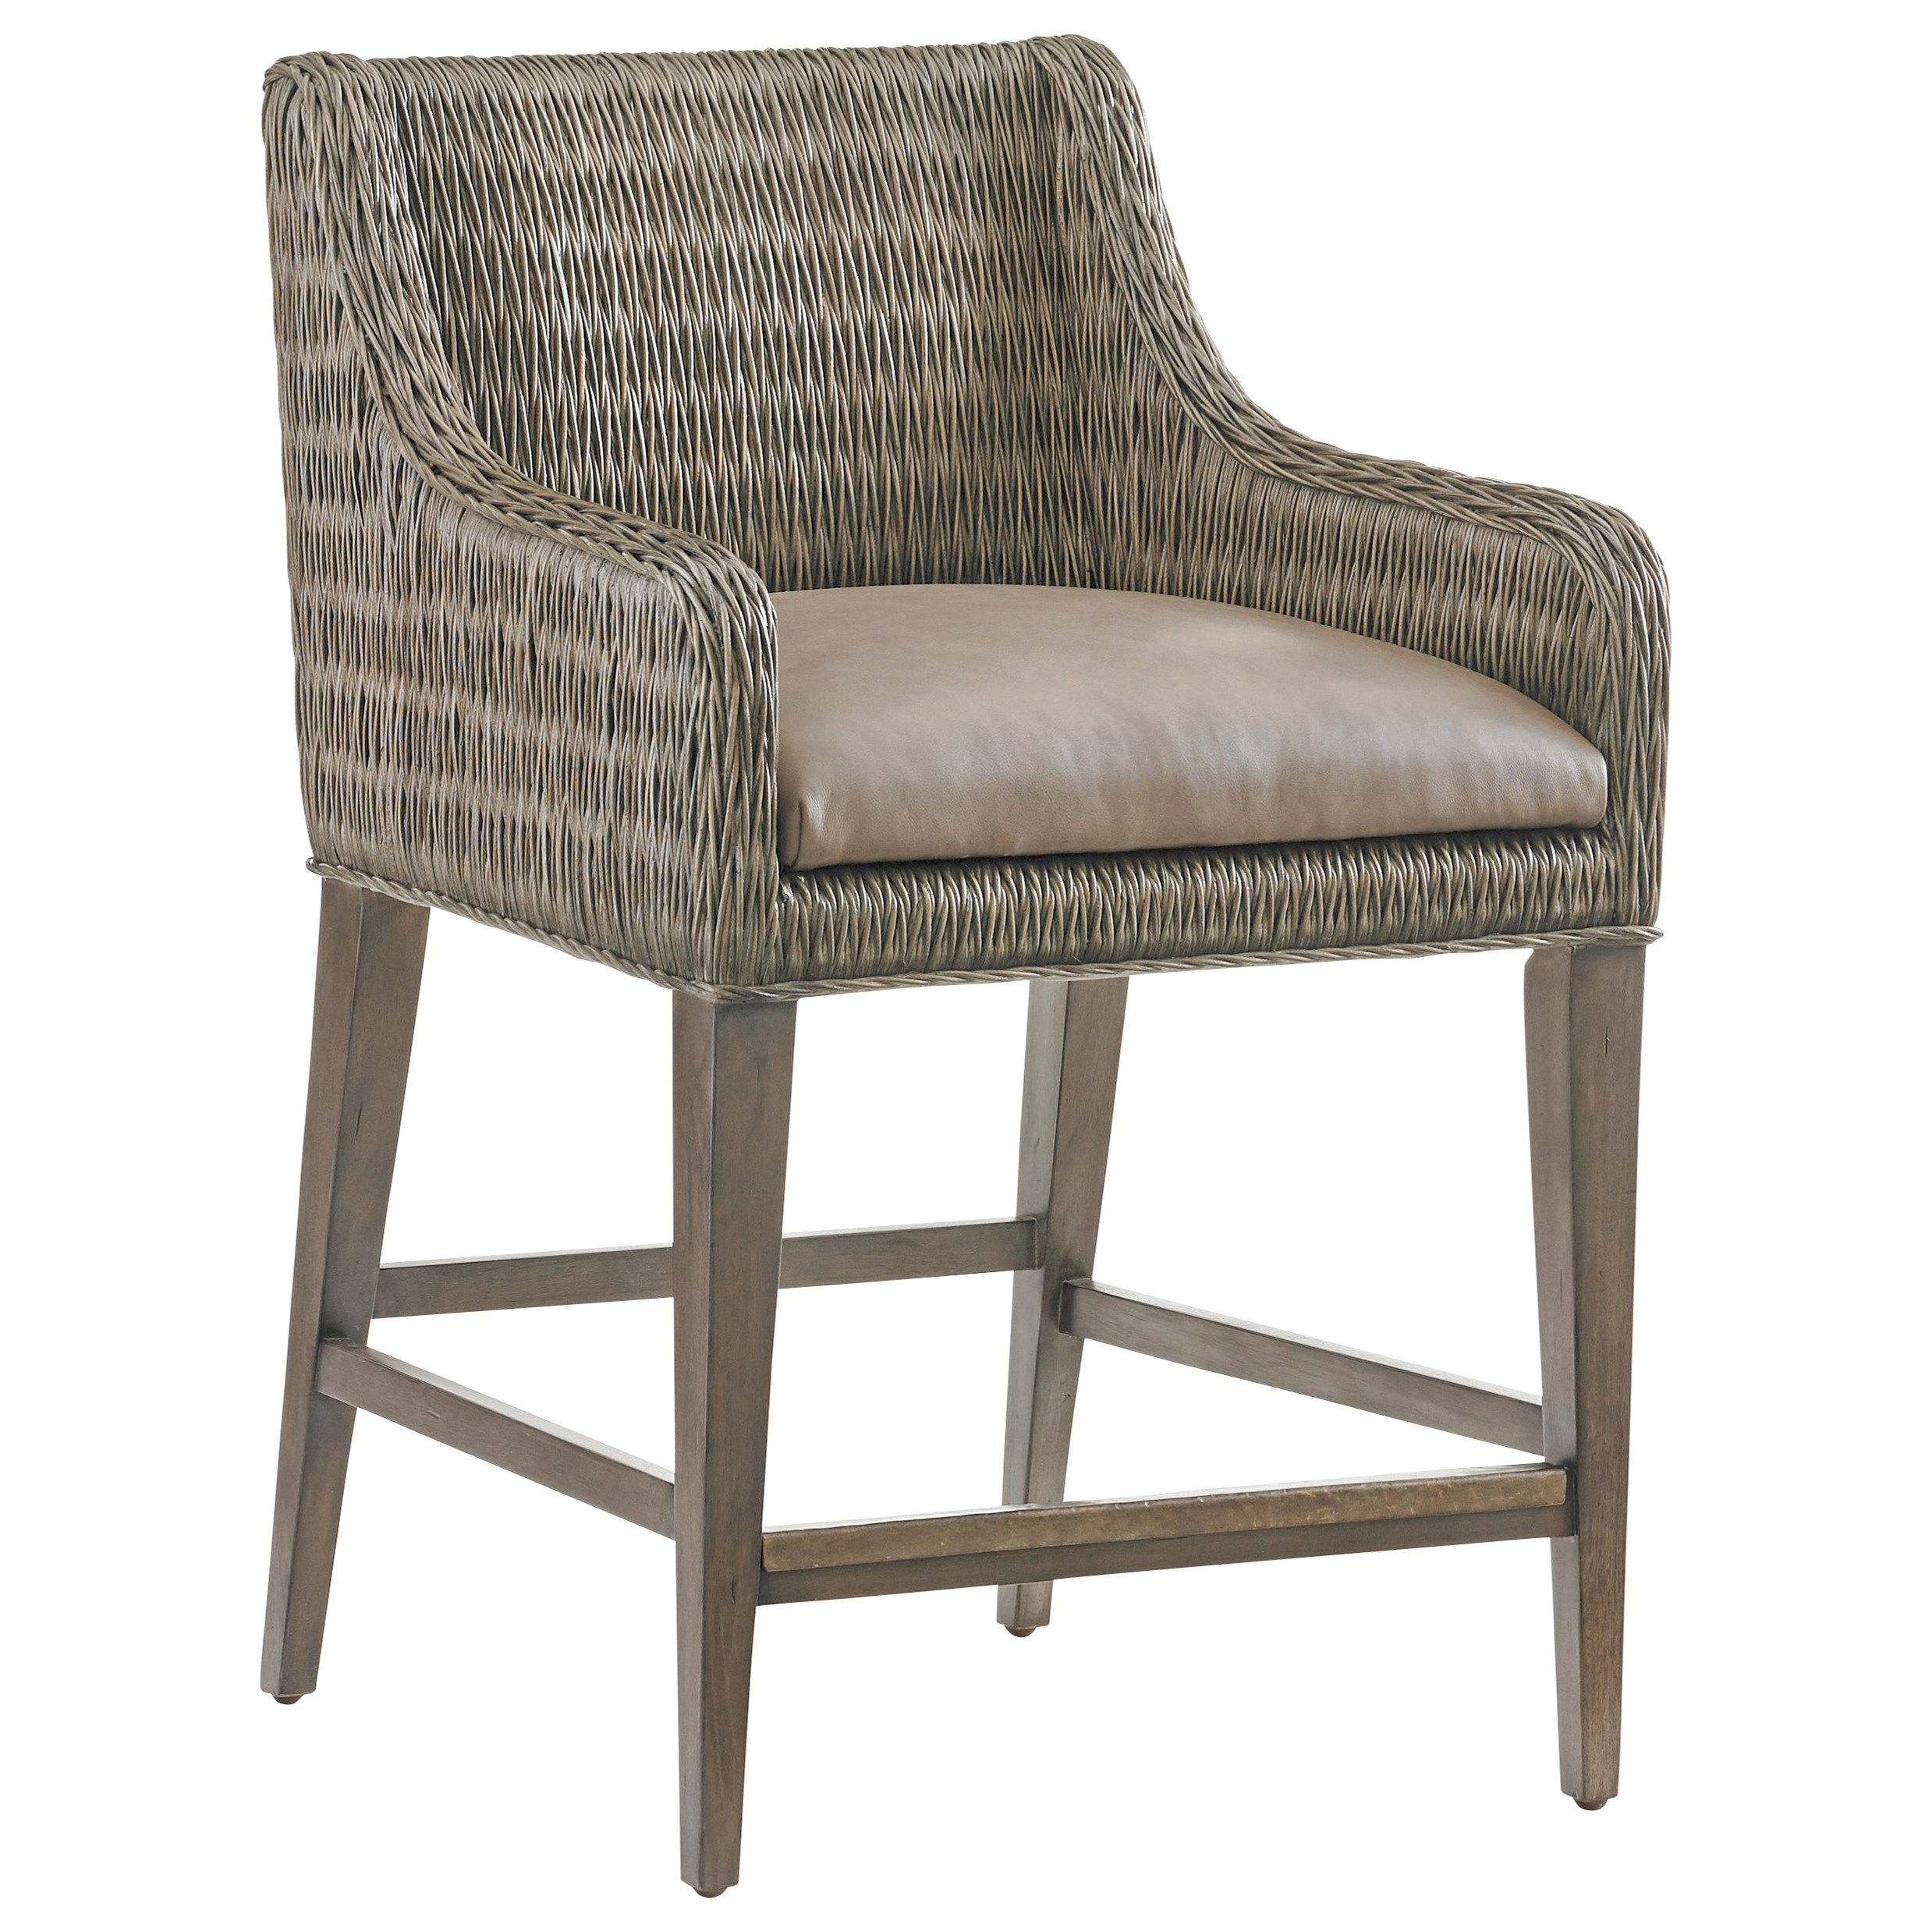 Cypress Point Turner Woven Counter Stool by Tommy Bahama Home at Baer's Furniture